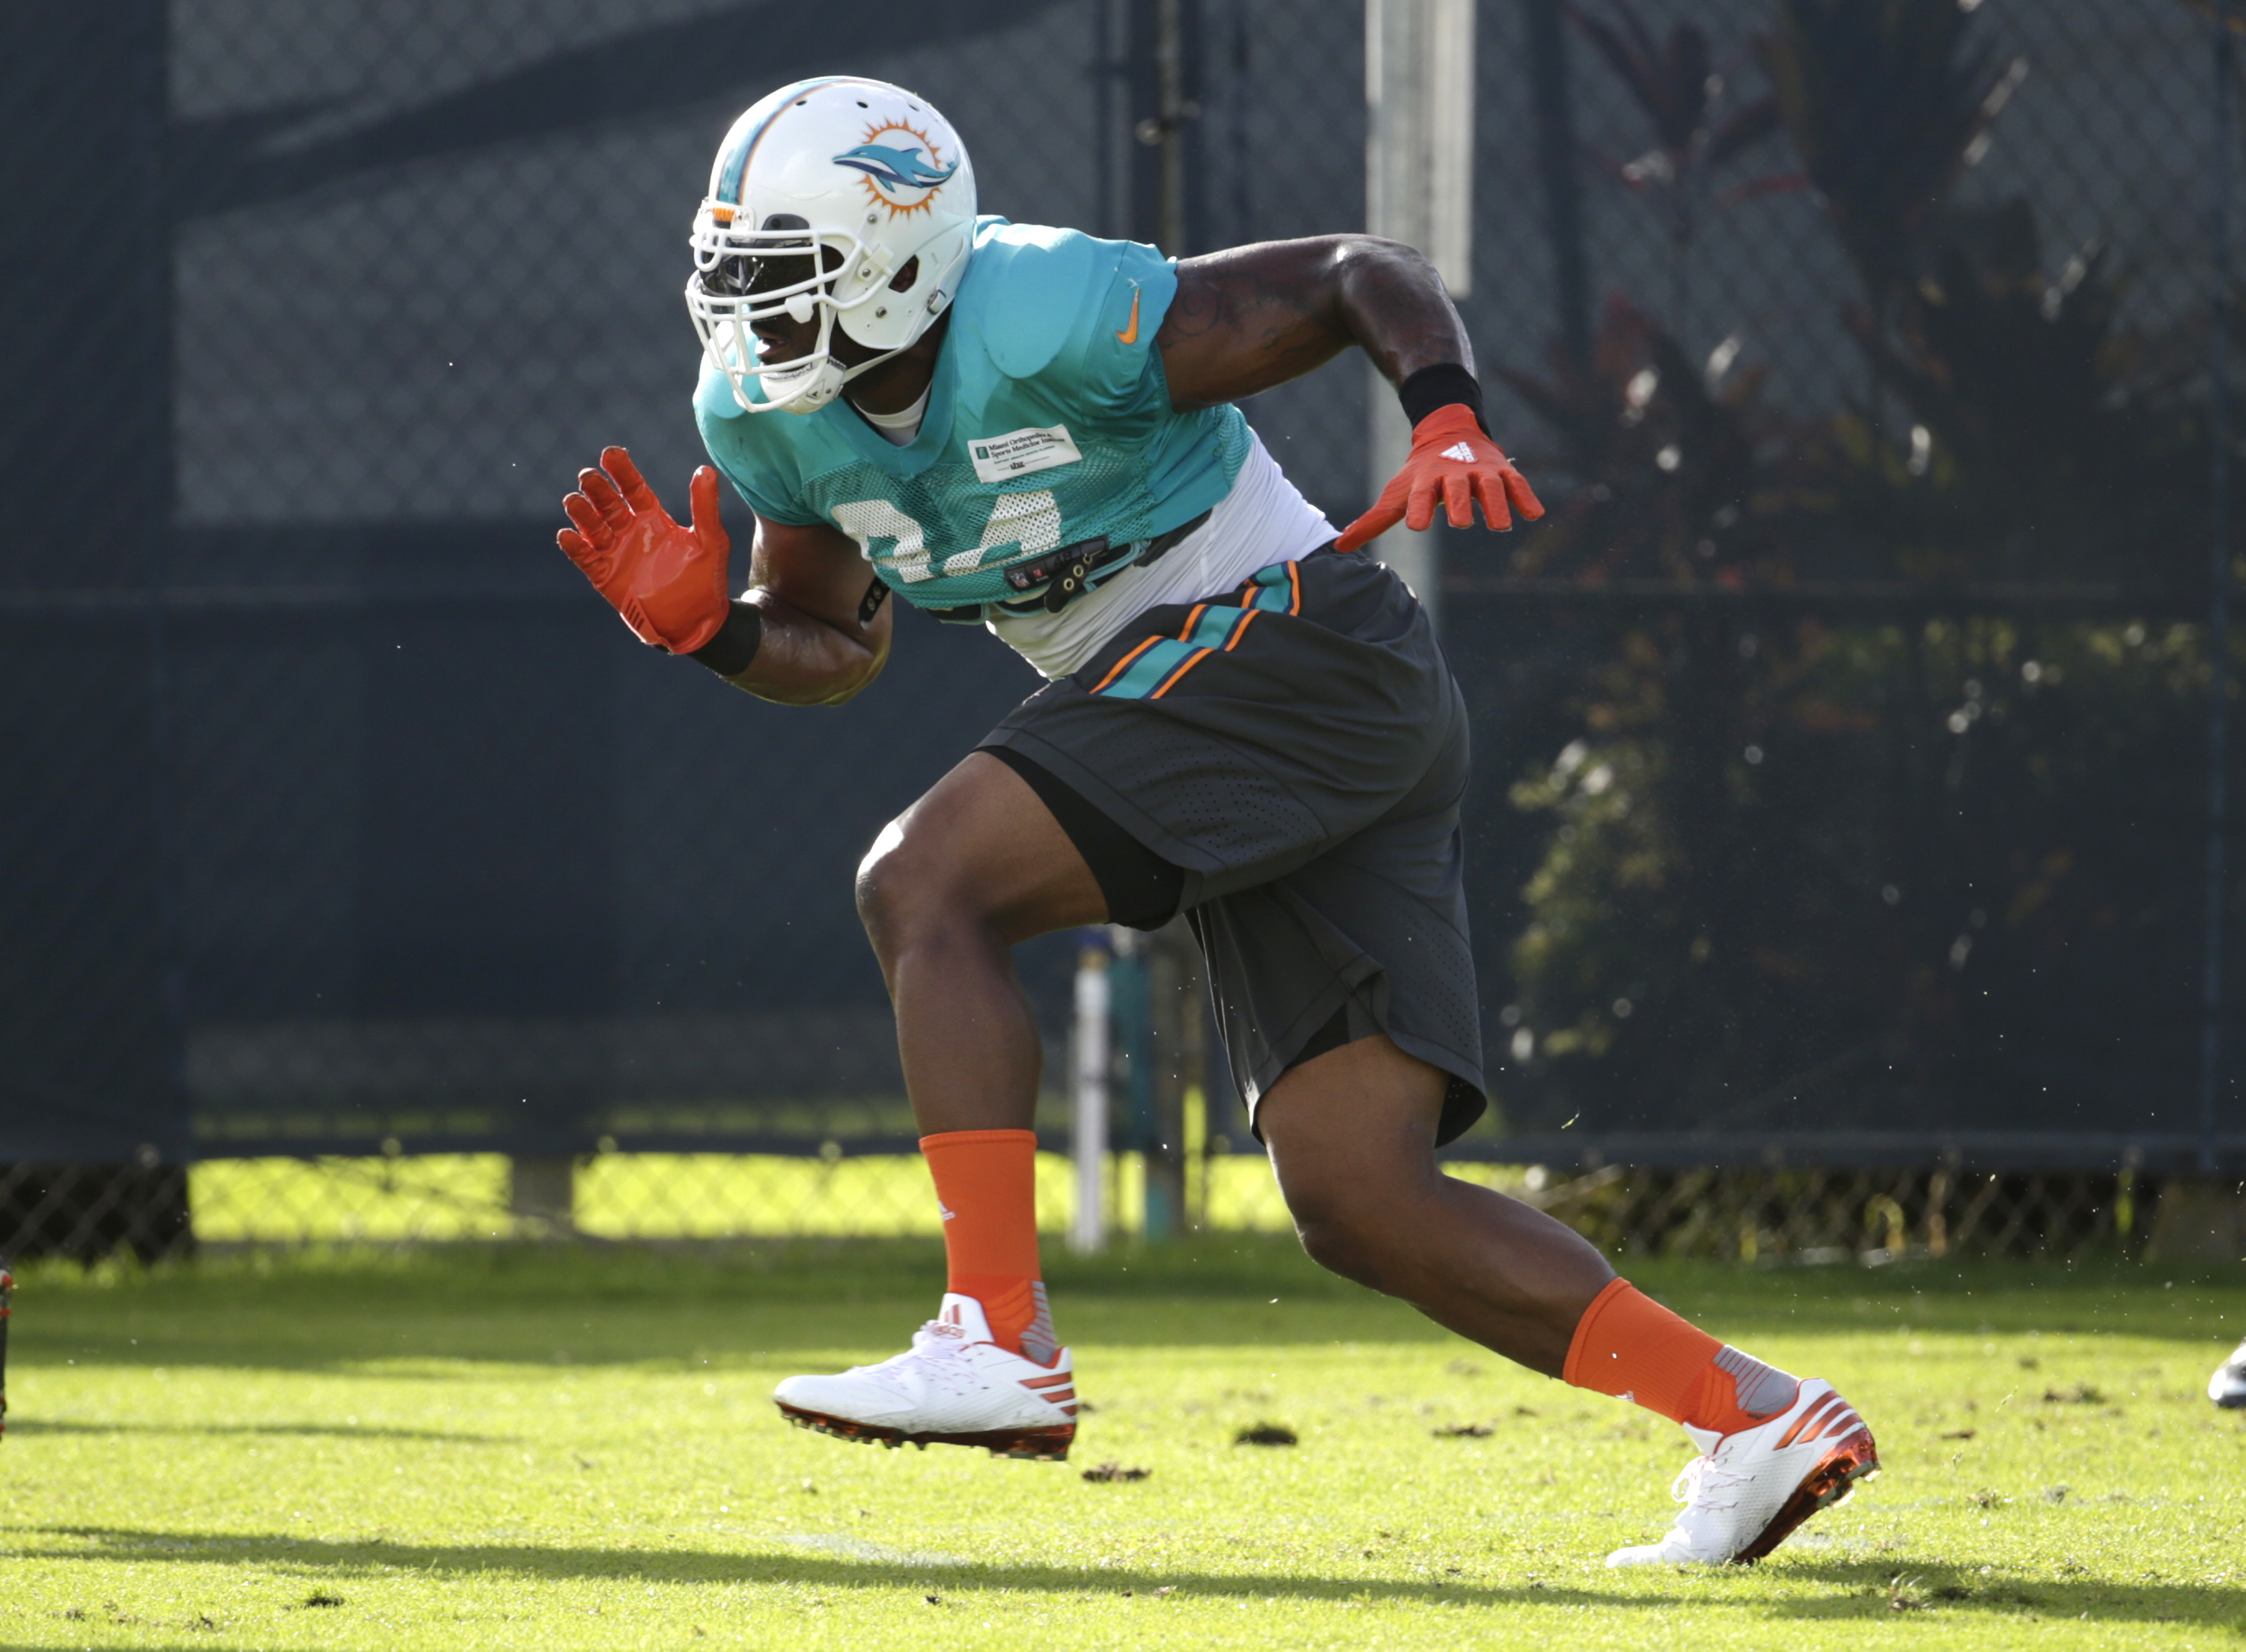 FILE - In this Aug. 15, 2016 file photo, Miami Dolphins defensive end Mario Williams runs drills, during practice at NFL football training camp in Davie, Fla. Williams makes in his debut with Miami on Sunday, Sept. 11 when the Dolphins play the the Seattl